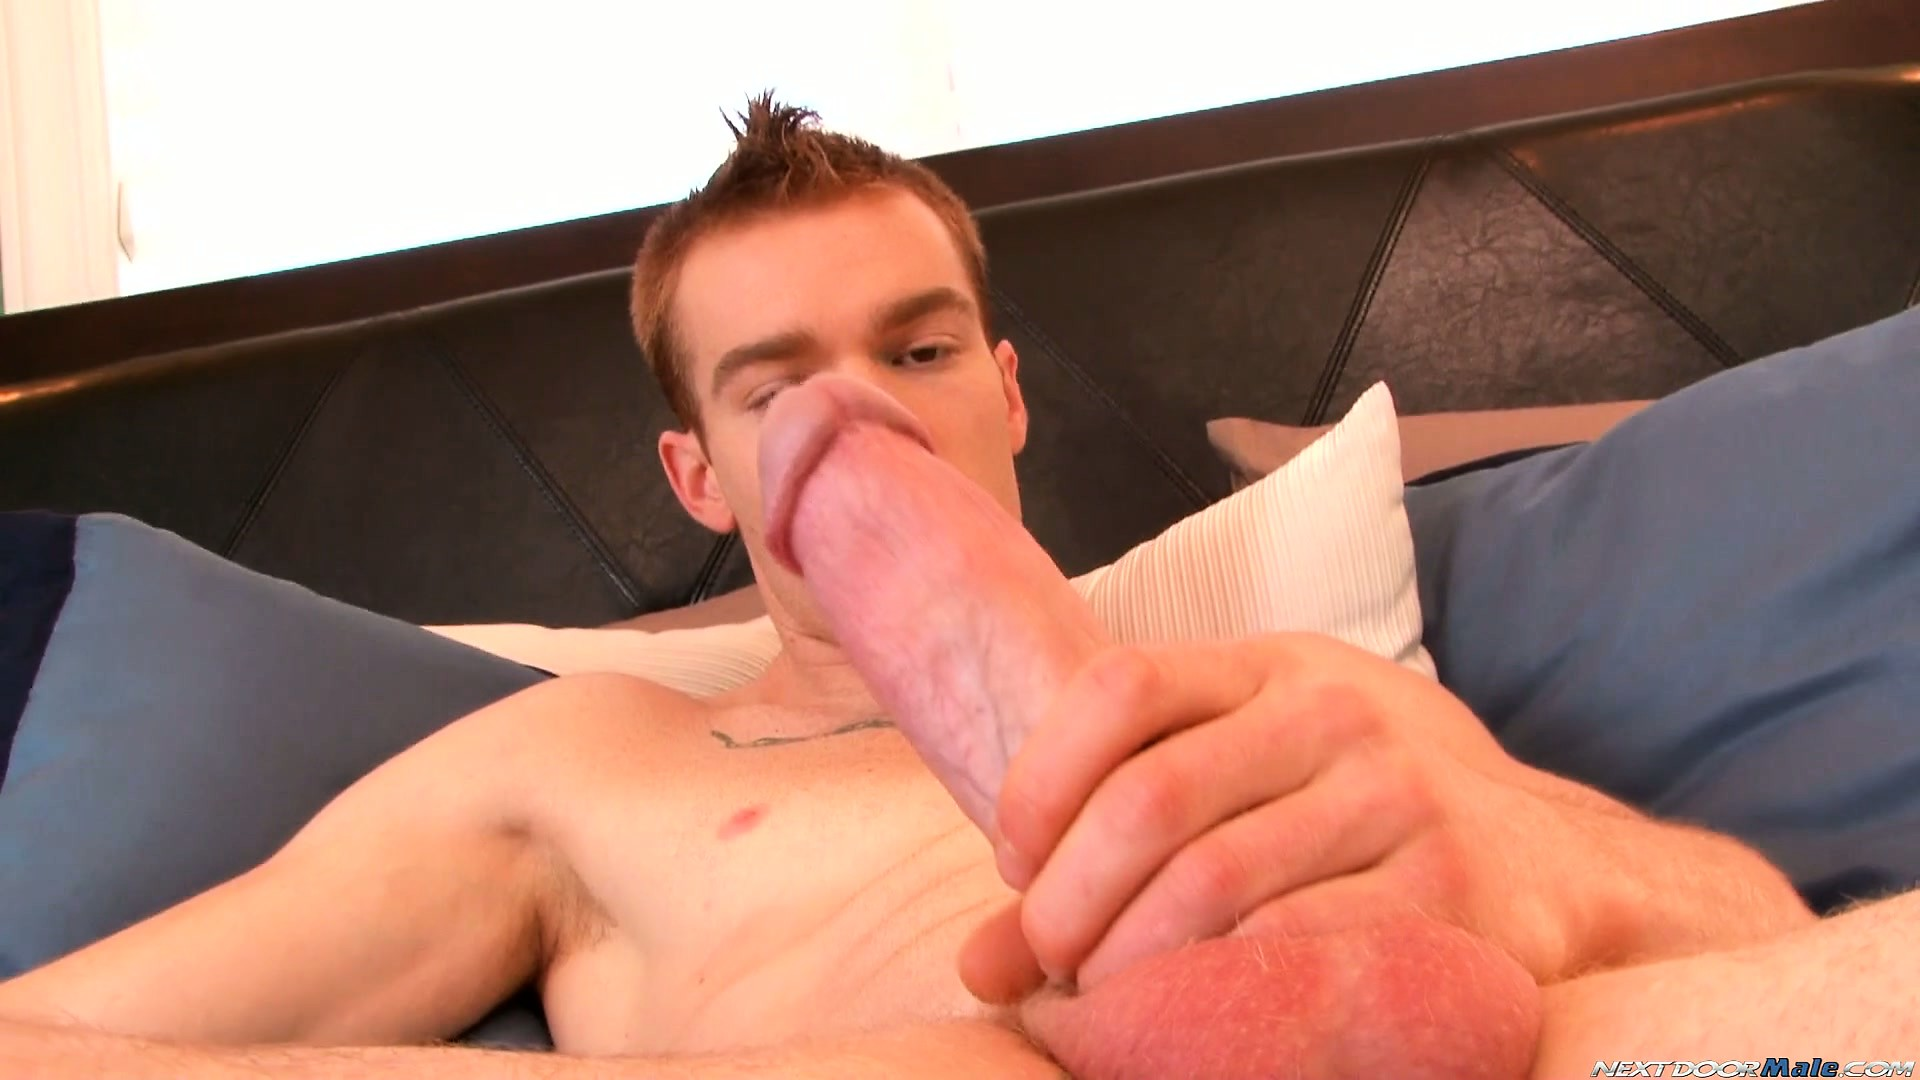 Porno Video of James Jamesson Loves The Feel Of His Hand On His Cock Before He Cums